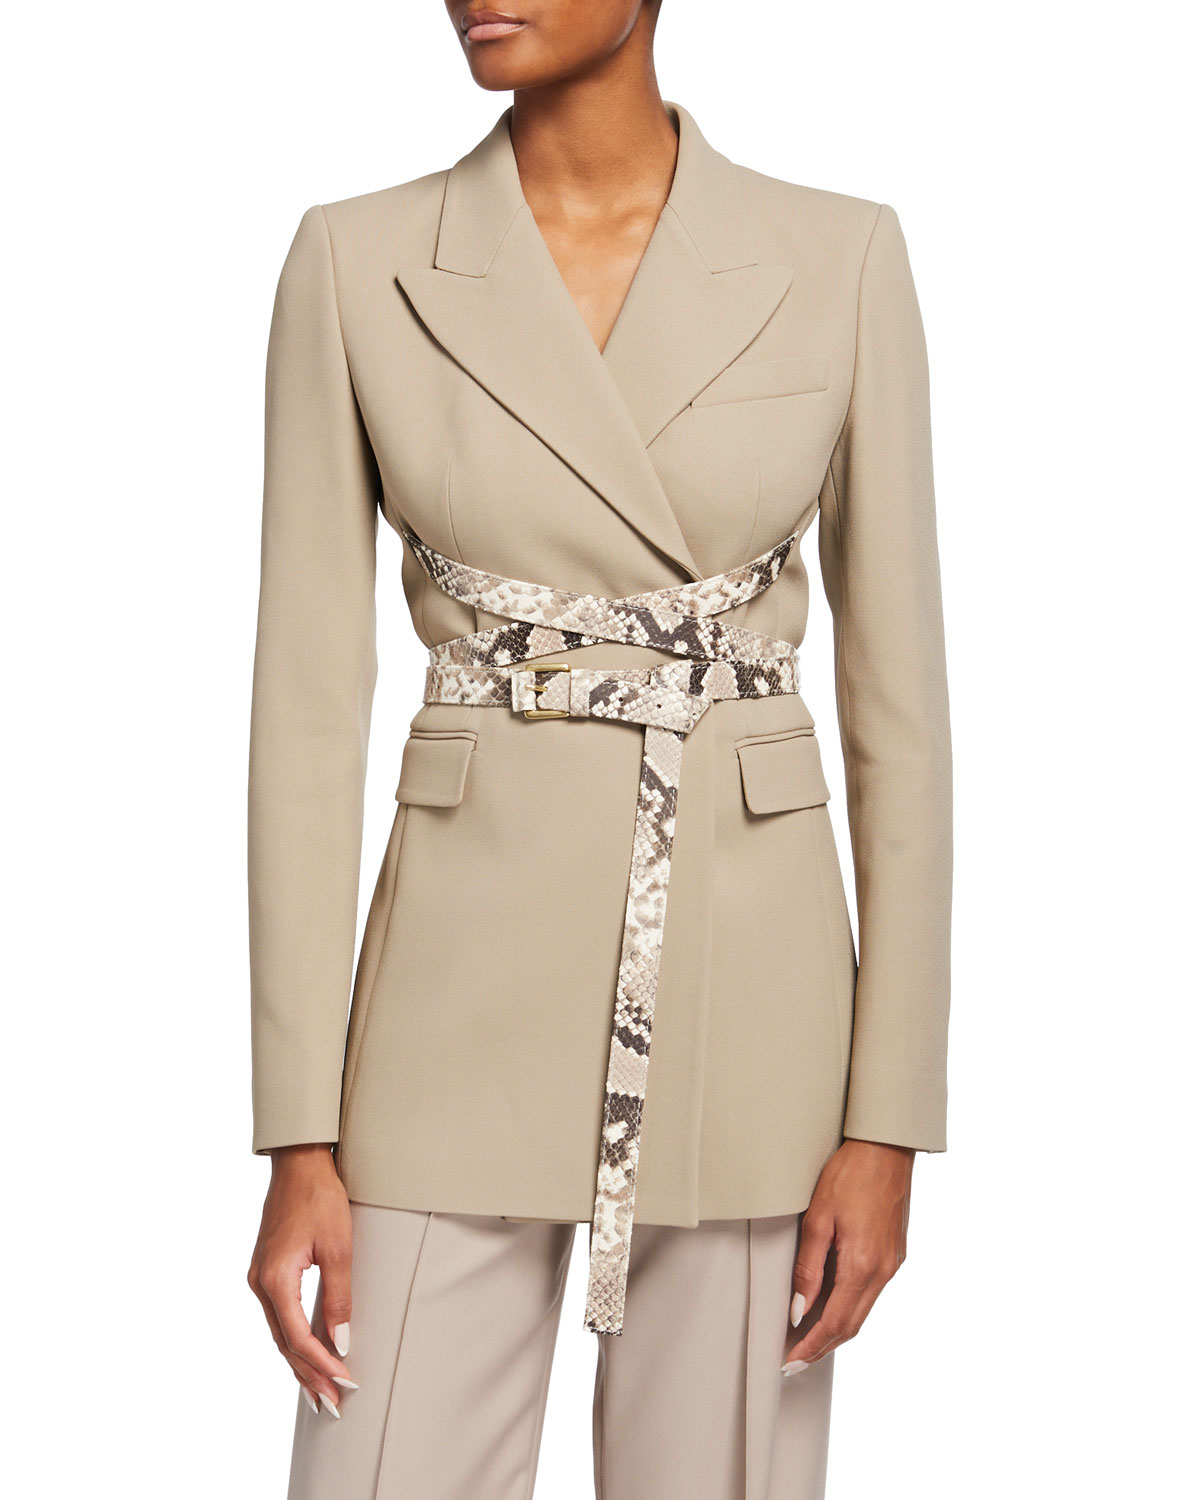 Michael Kors PYTHON LEATHER STRAPPED BLAZER